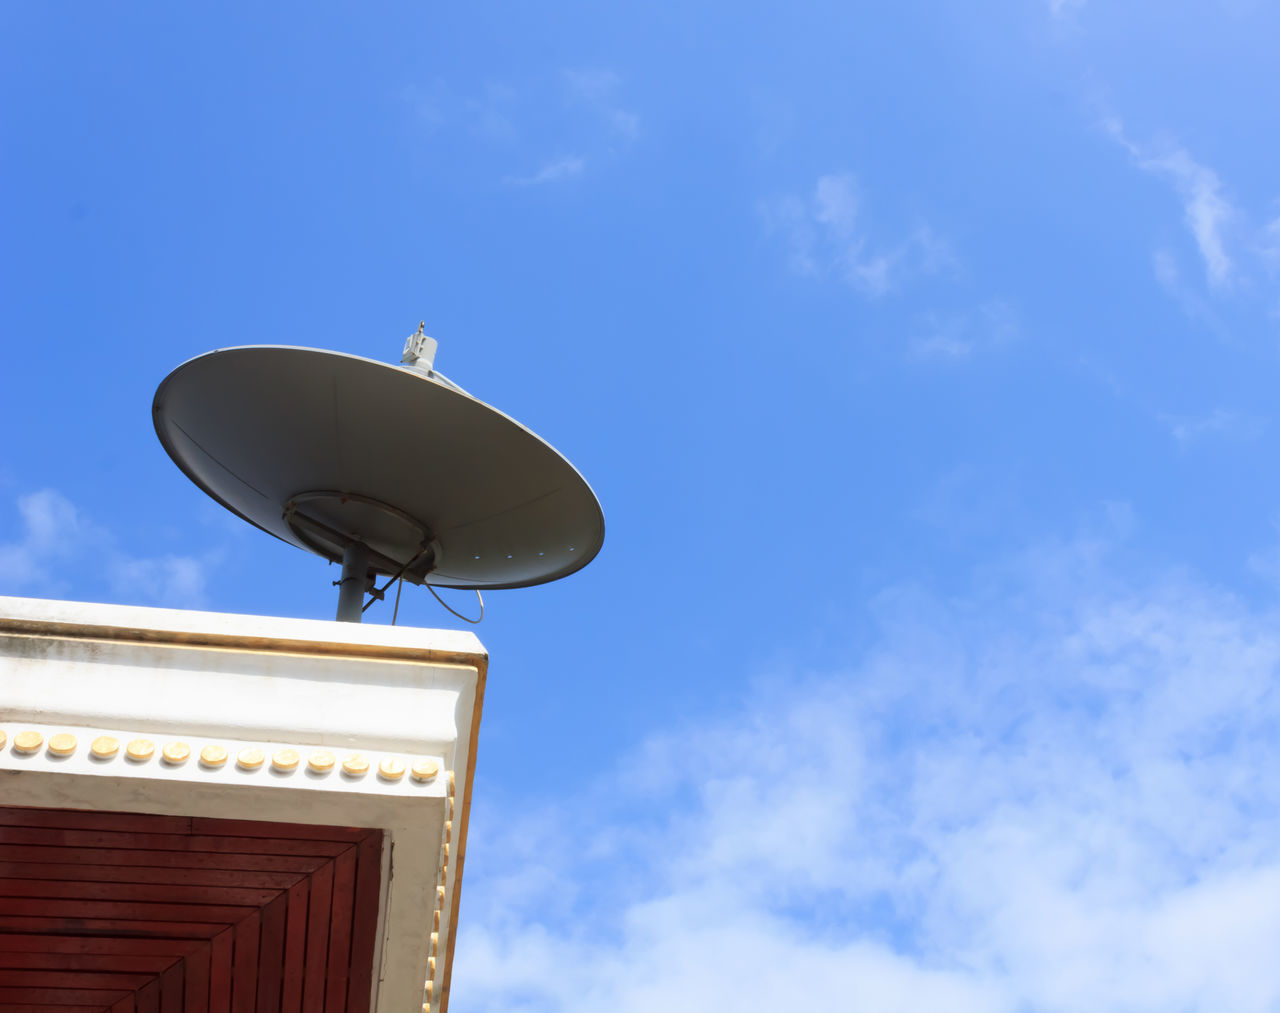 communication, satellite dish, global communications, broadcasting, low angle view, telecommunications equipment, technology, antenna - aerial, sky, architecture, built structure, day, cloud - sky, no people, roof, blue, building exterior, outdoors, data, wireless technology, television aerial, radar, information medium, radio station